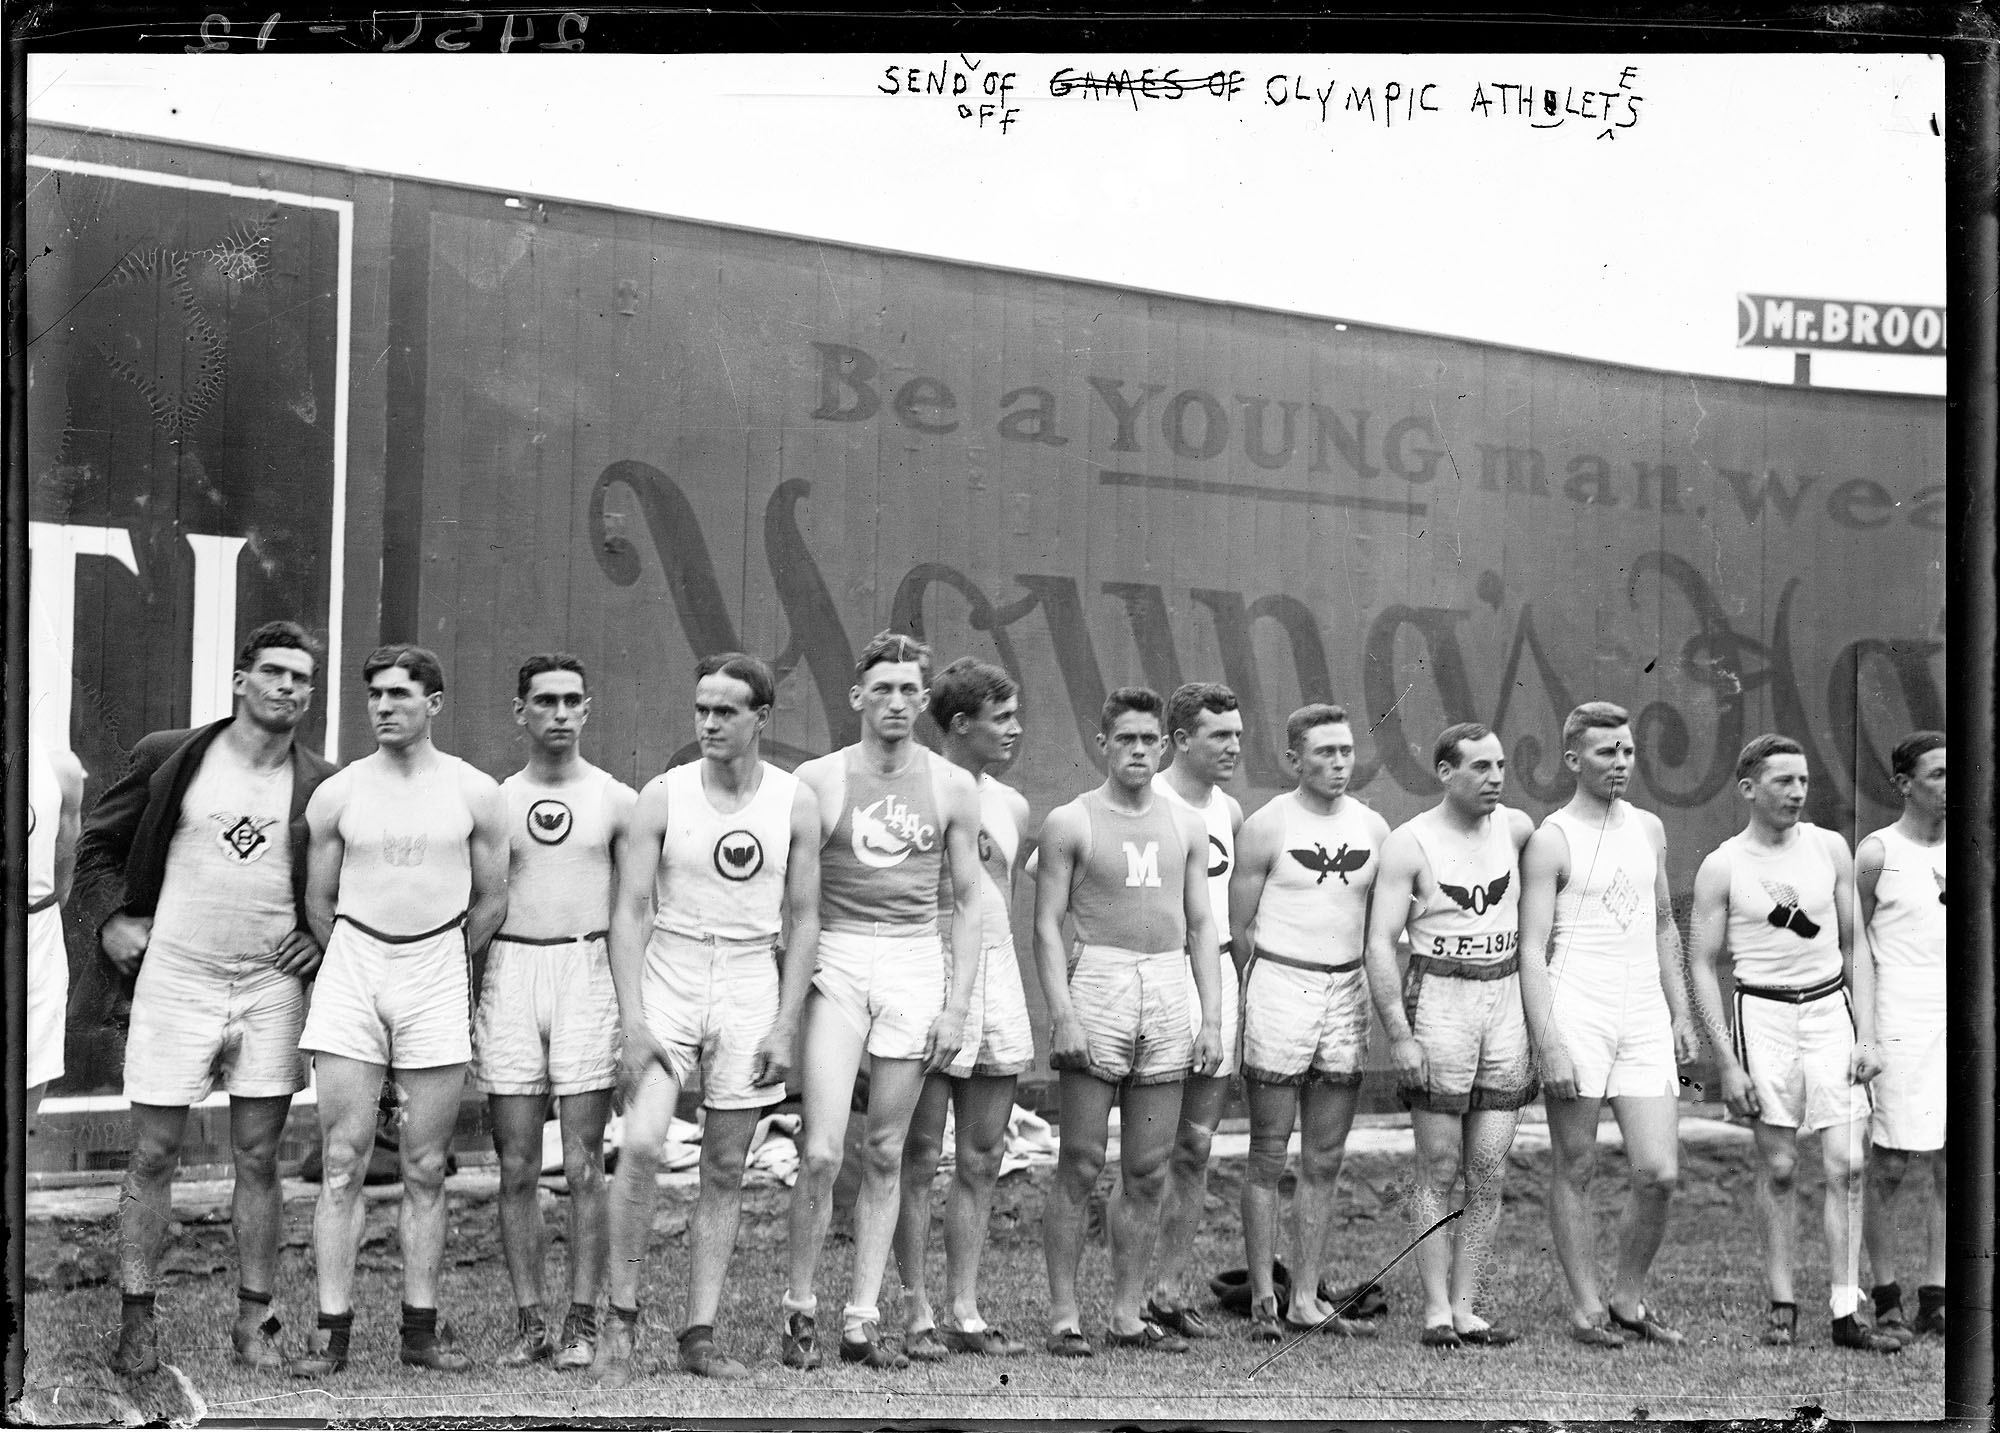 1912 U.S. Olympic Team (Stockholm, Sweden Games)